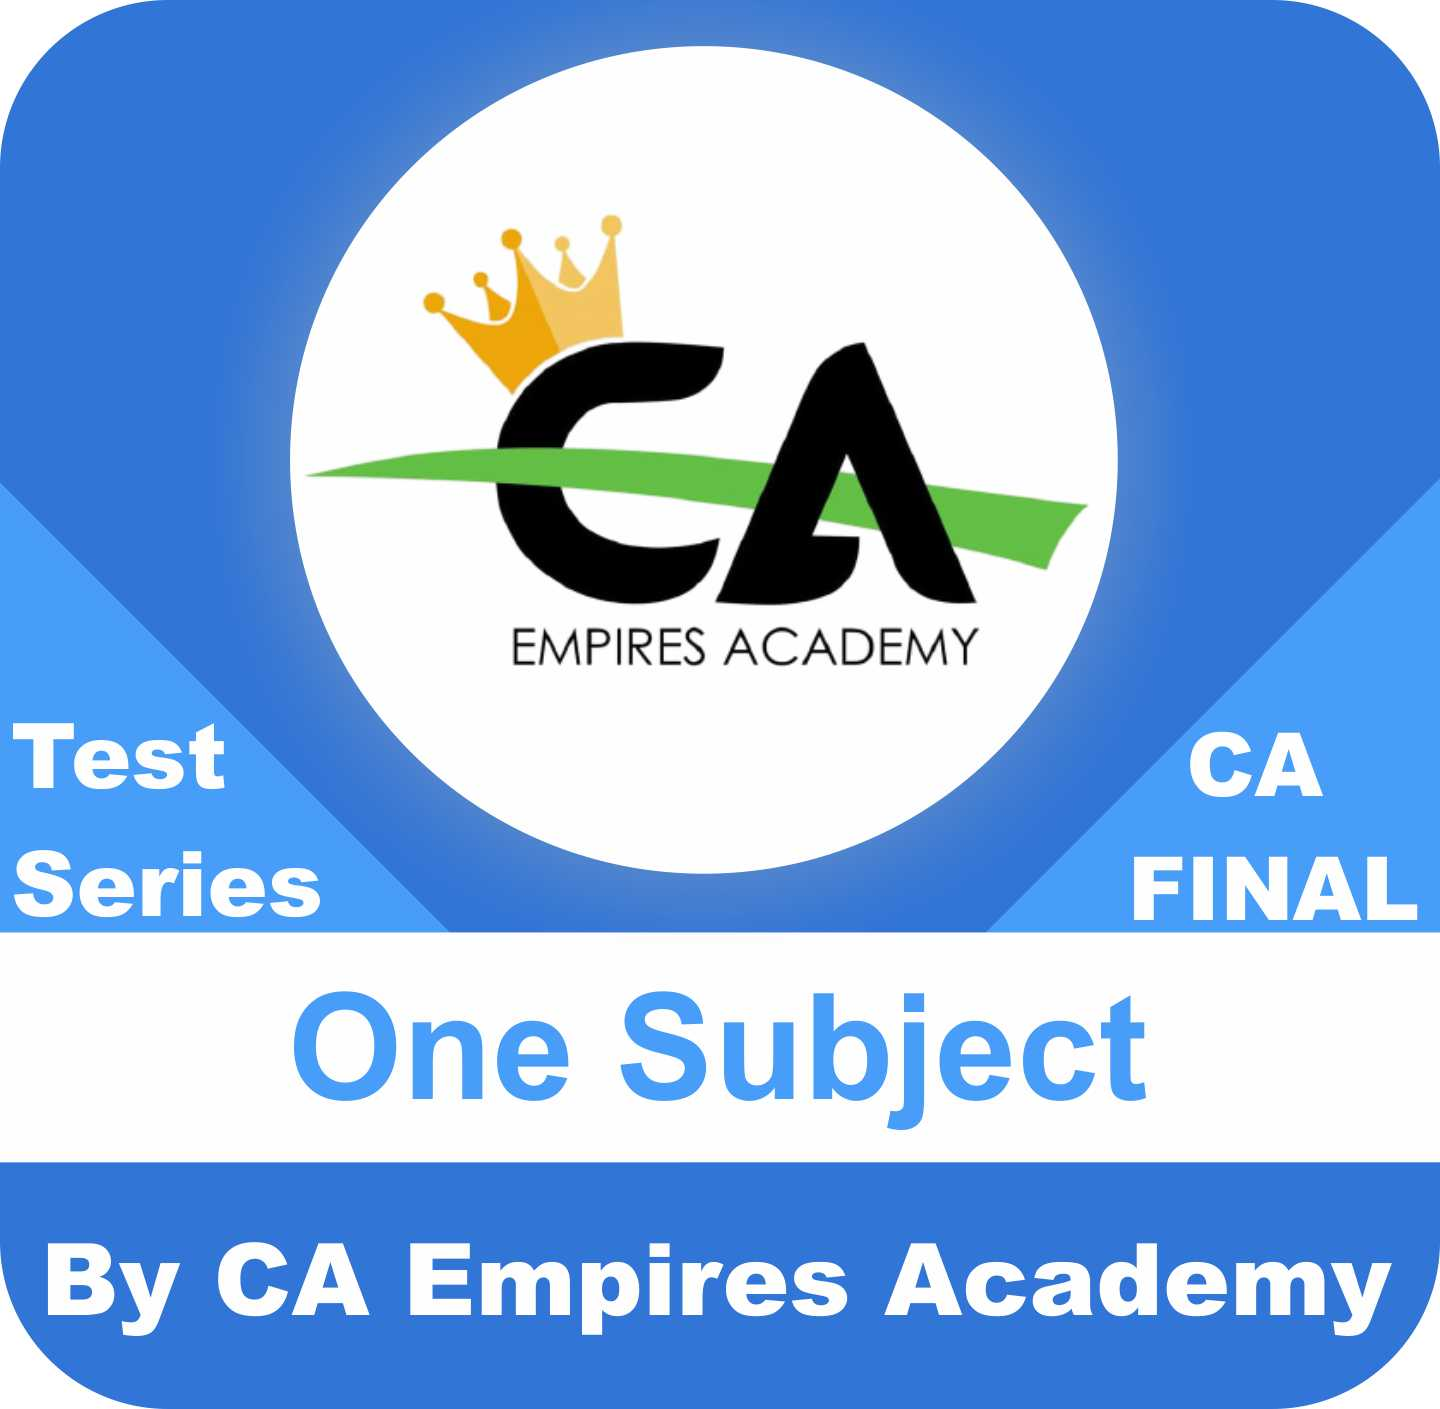 Any One Subject Test Series in Gold Plan